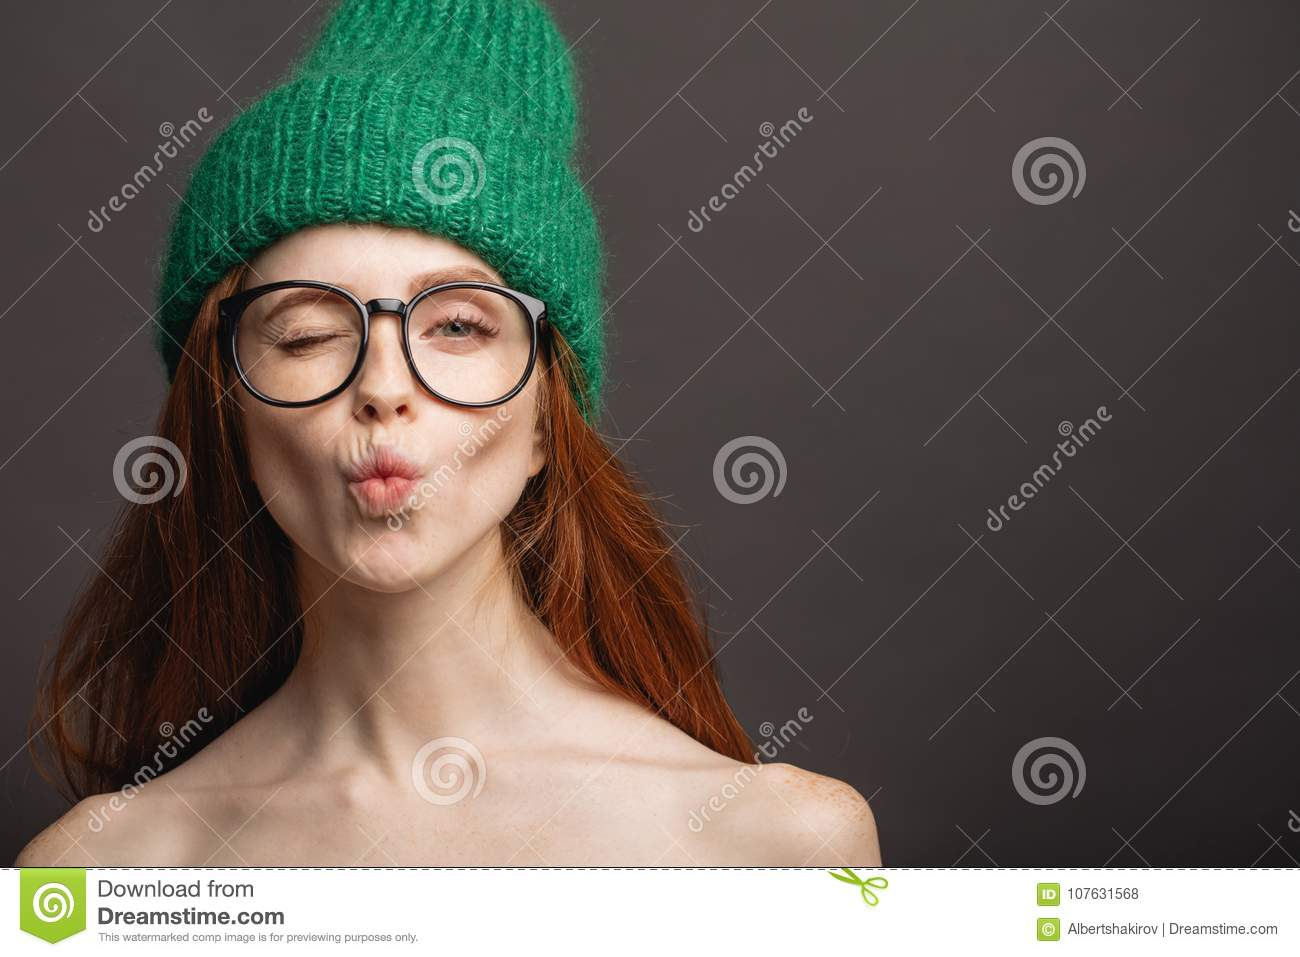 9342f0c17891a Ginger woman wearing glasses and green hat pouting her lips ready for kiss